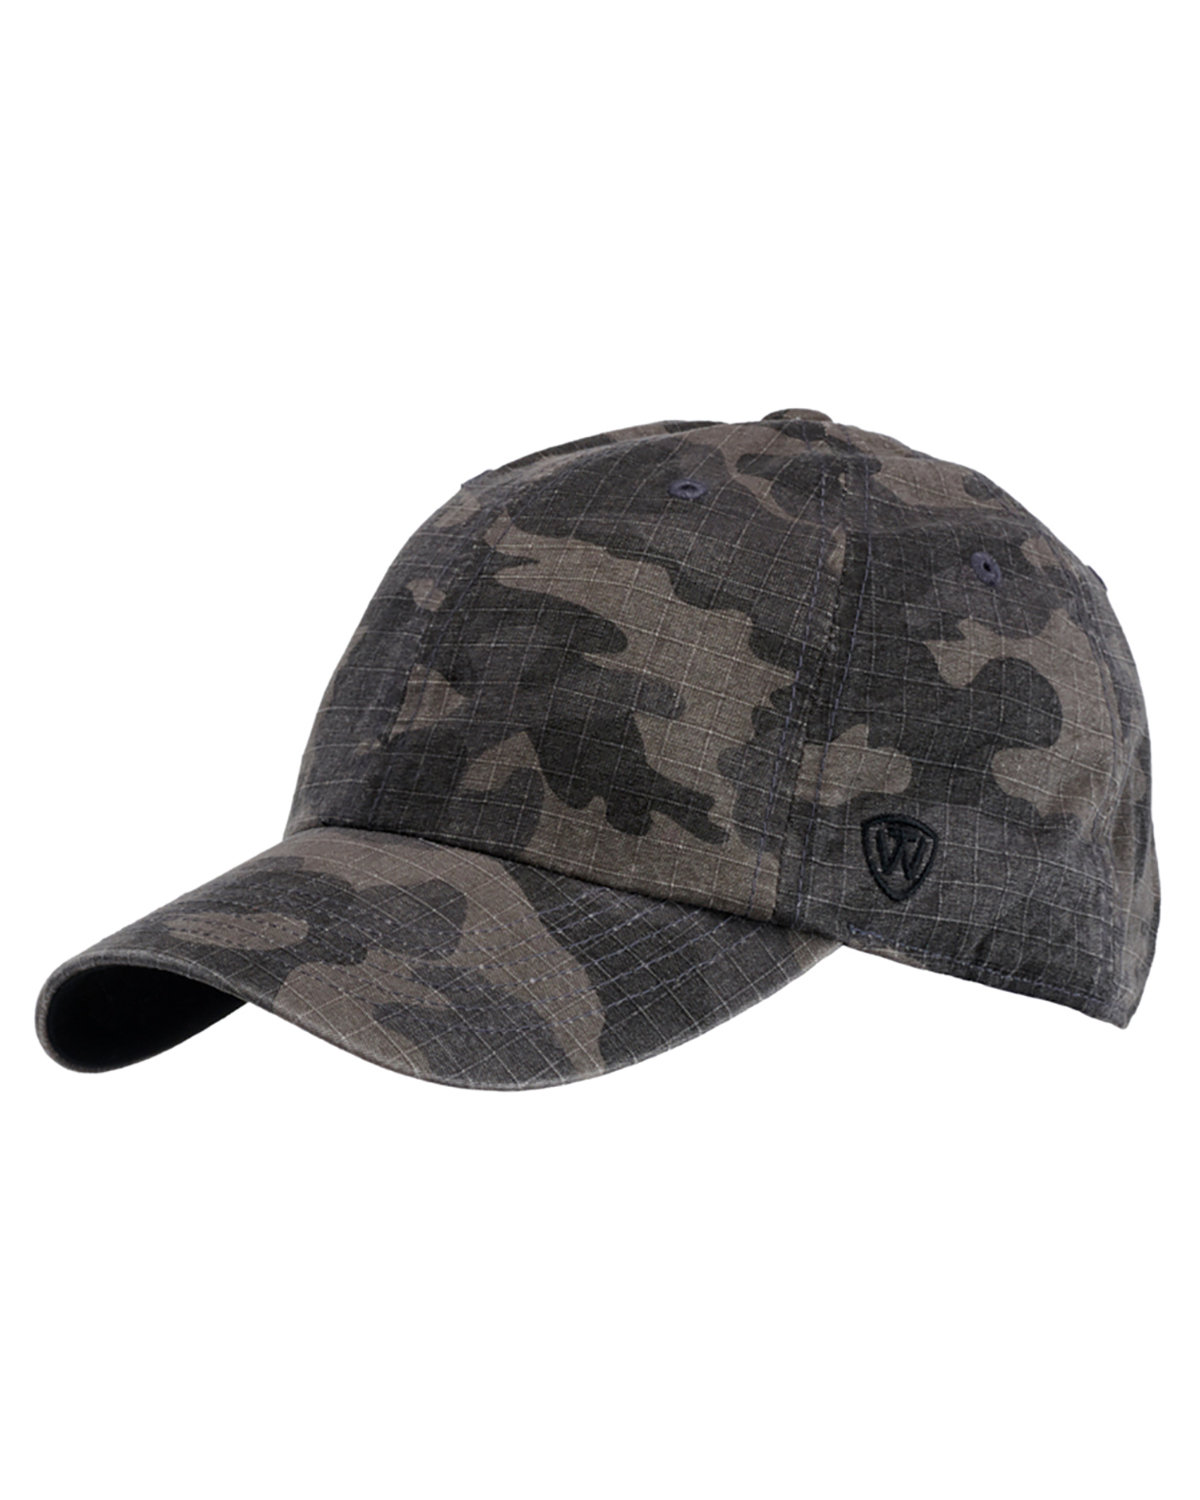 Top Of The World Ripper Washed Cotton Ripstop Hat BLACK CAMO